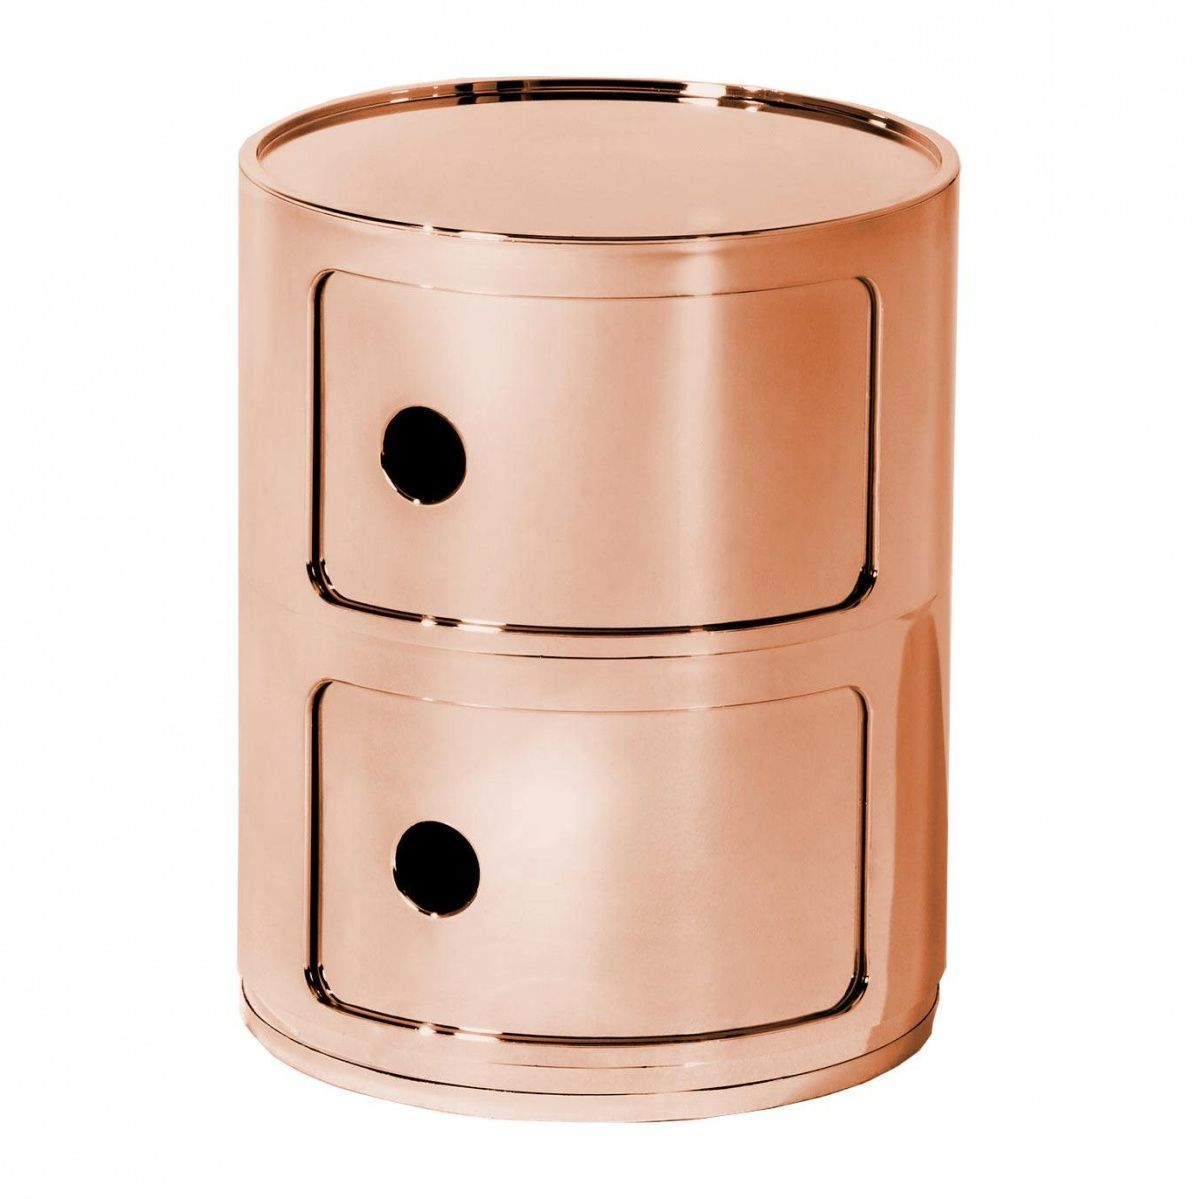 componibili  metallic container  kartell  ambientedirectcom - kartell  componibili  metallic container  copperglossy